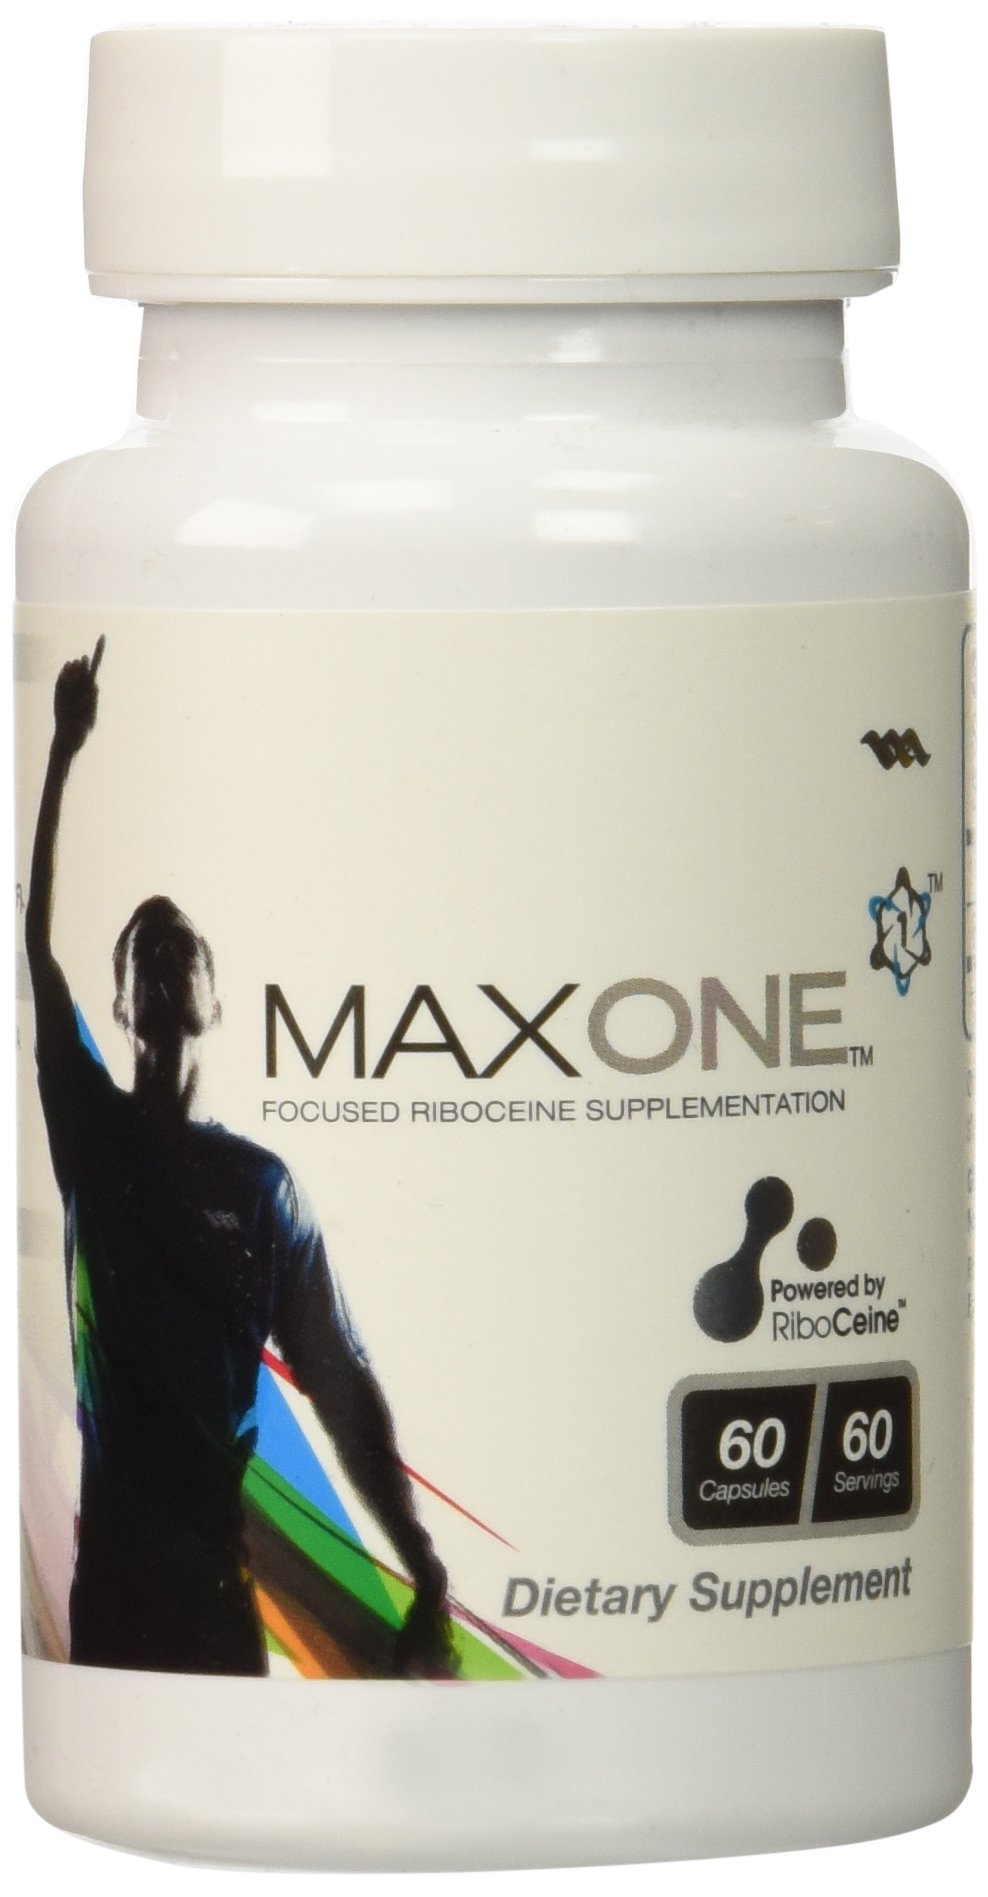 Max One, Focused Riboceine Supplementation, 60 Vegetable Capsules, 30 Servings